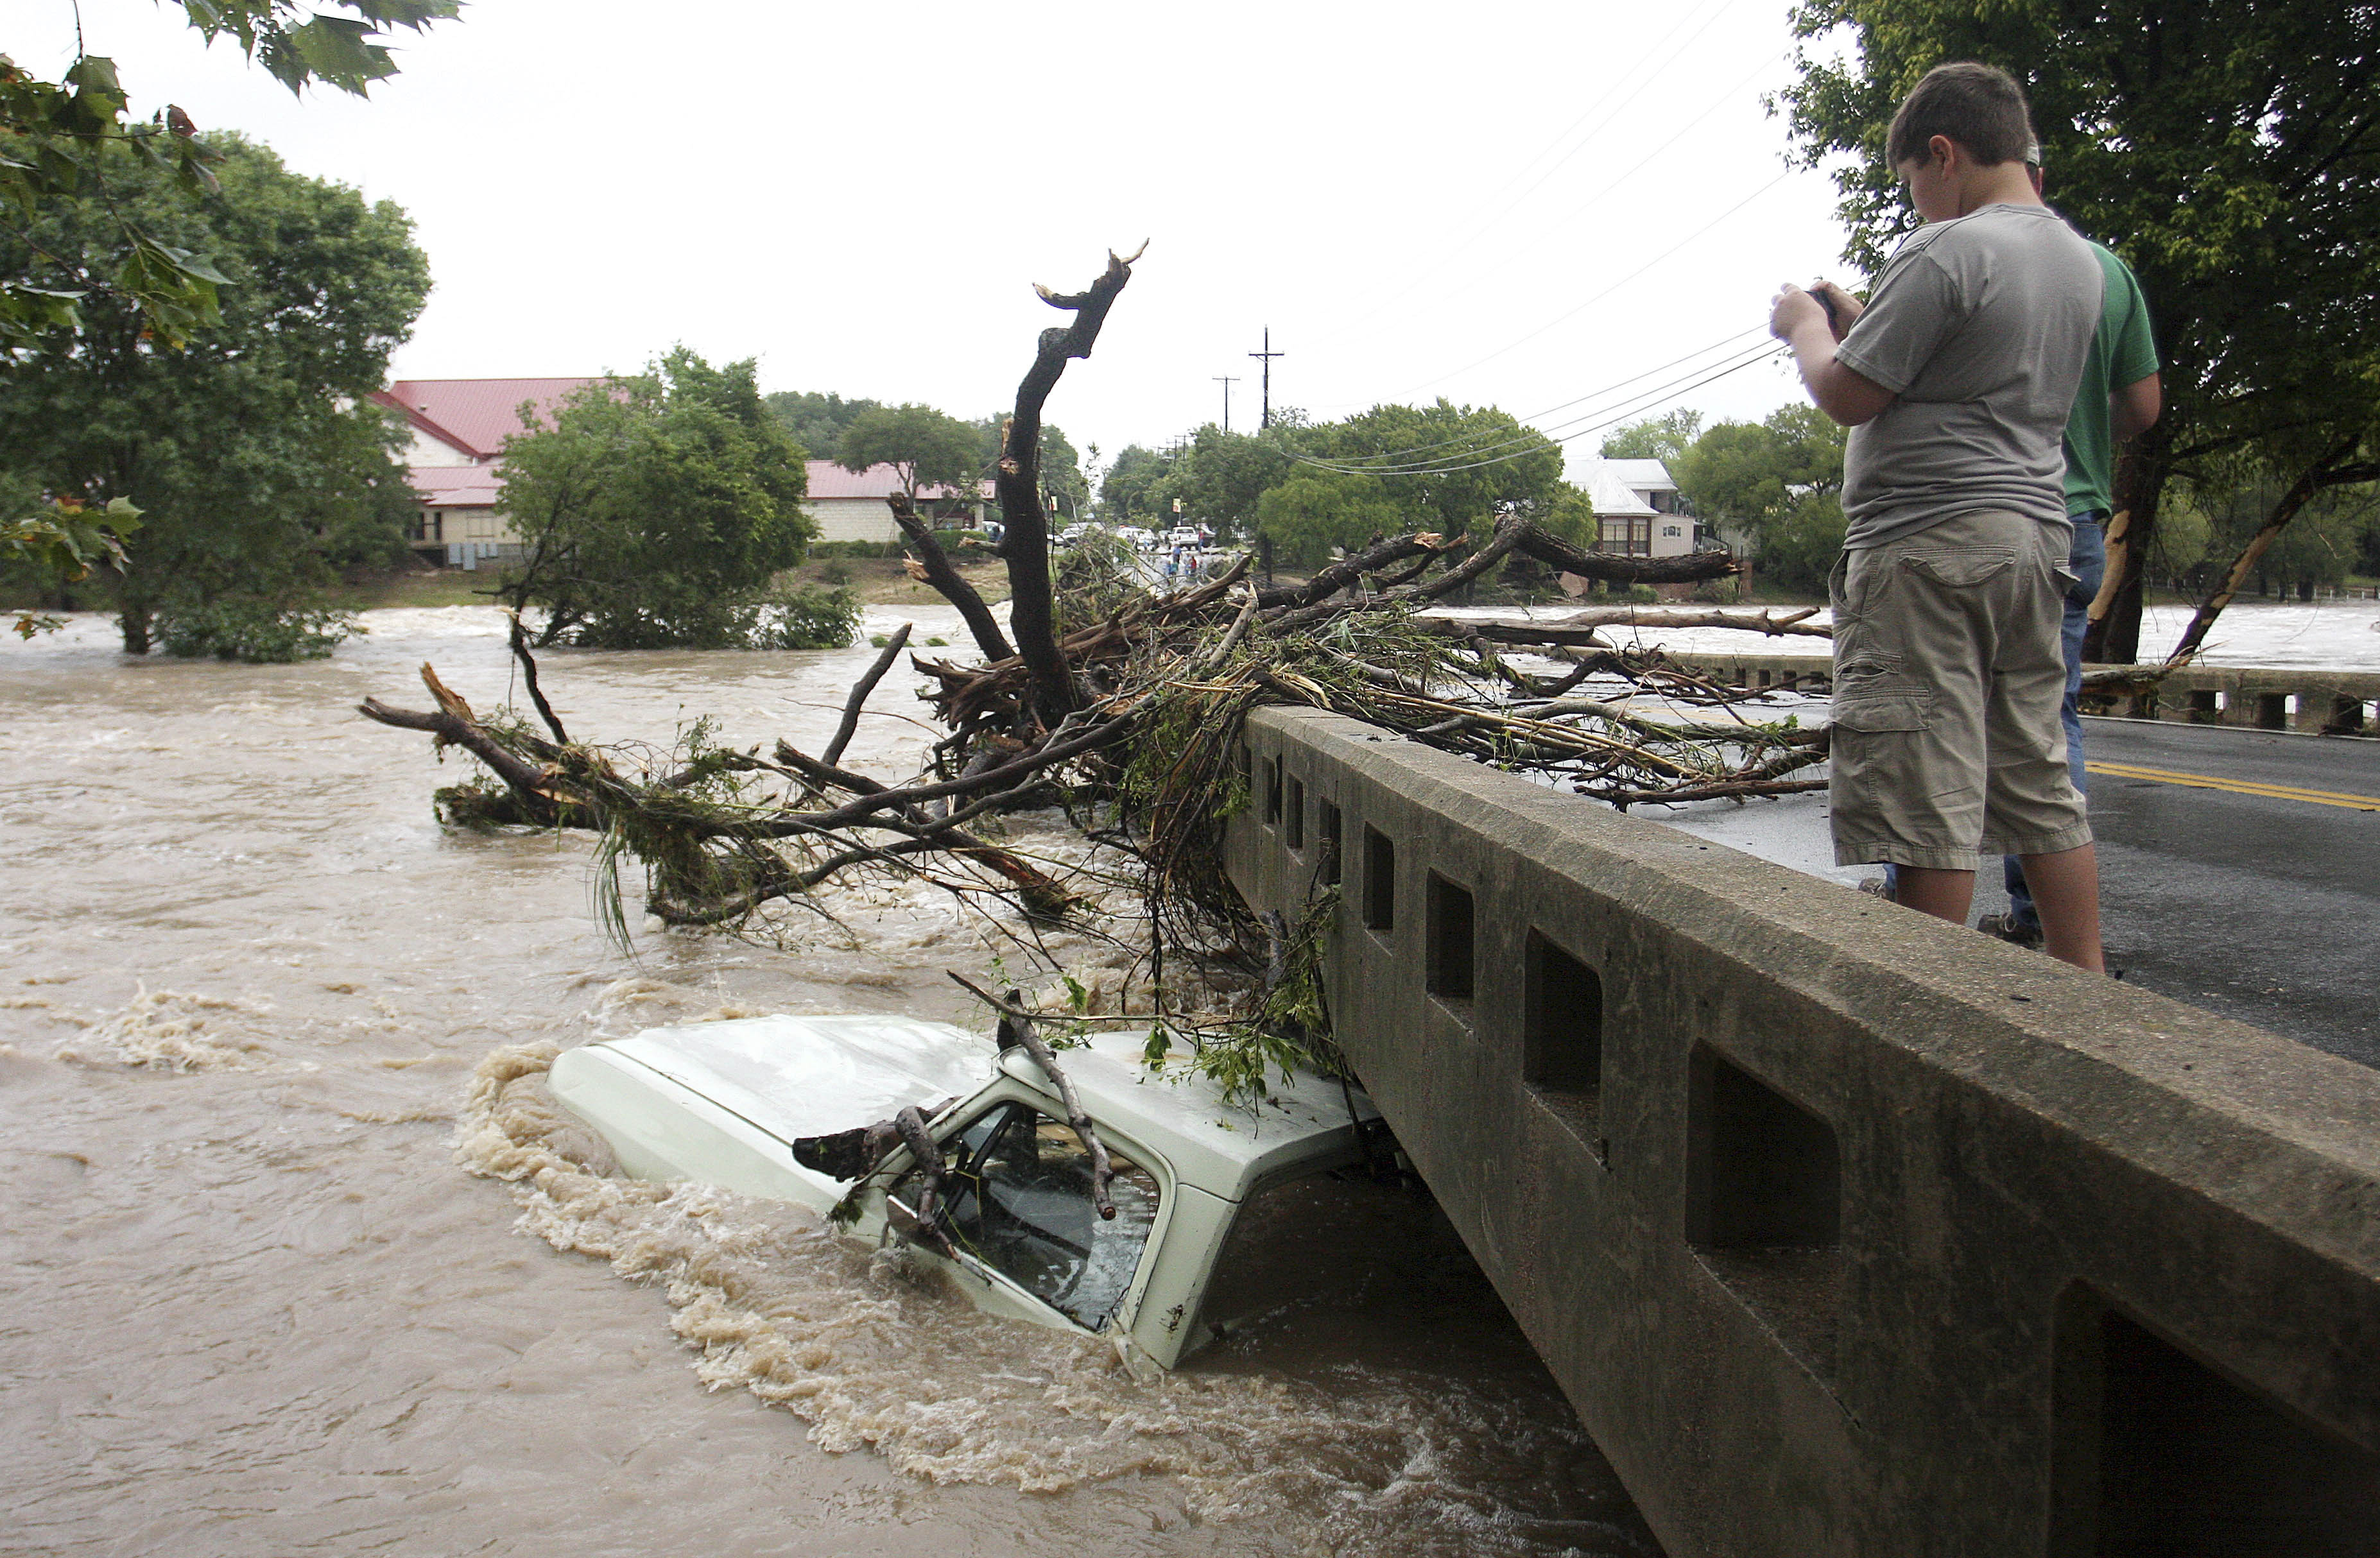 Visitors of Salado snap photos of a submerged truck under the Main Street bridge on Wednesday as the water began to recede, in Salado, Texas.